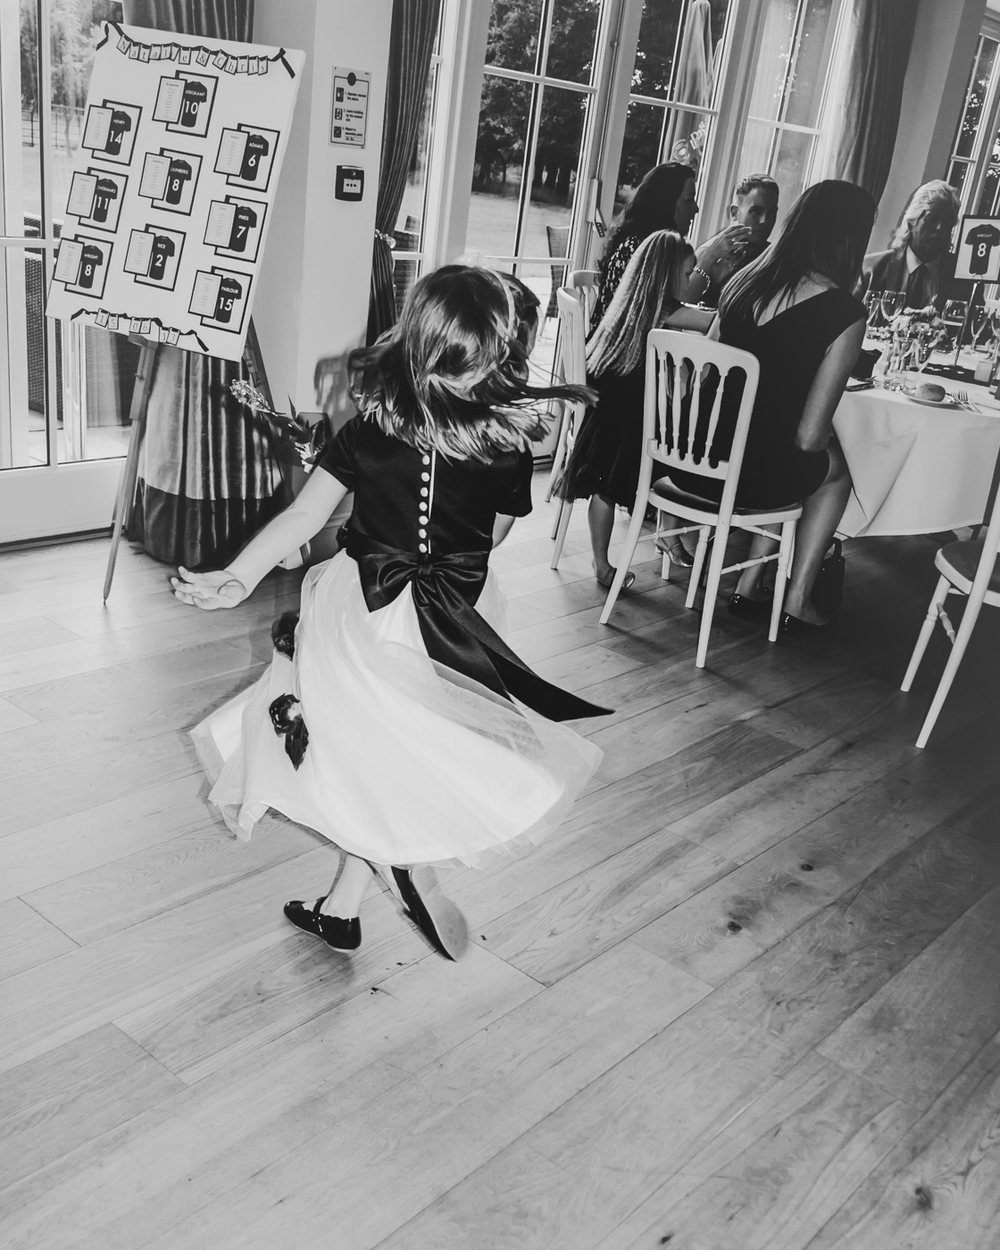 486 - Chris and Natalies Wedding (MAIN) - DO NOT SHARE THIS IMAGES ONLINE -4771.JPG